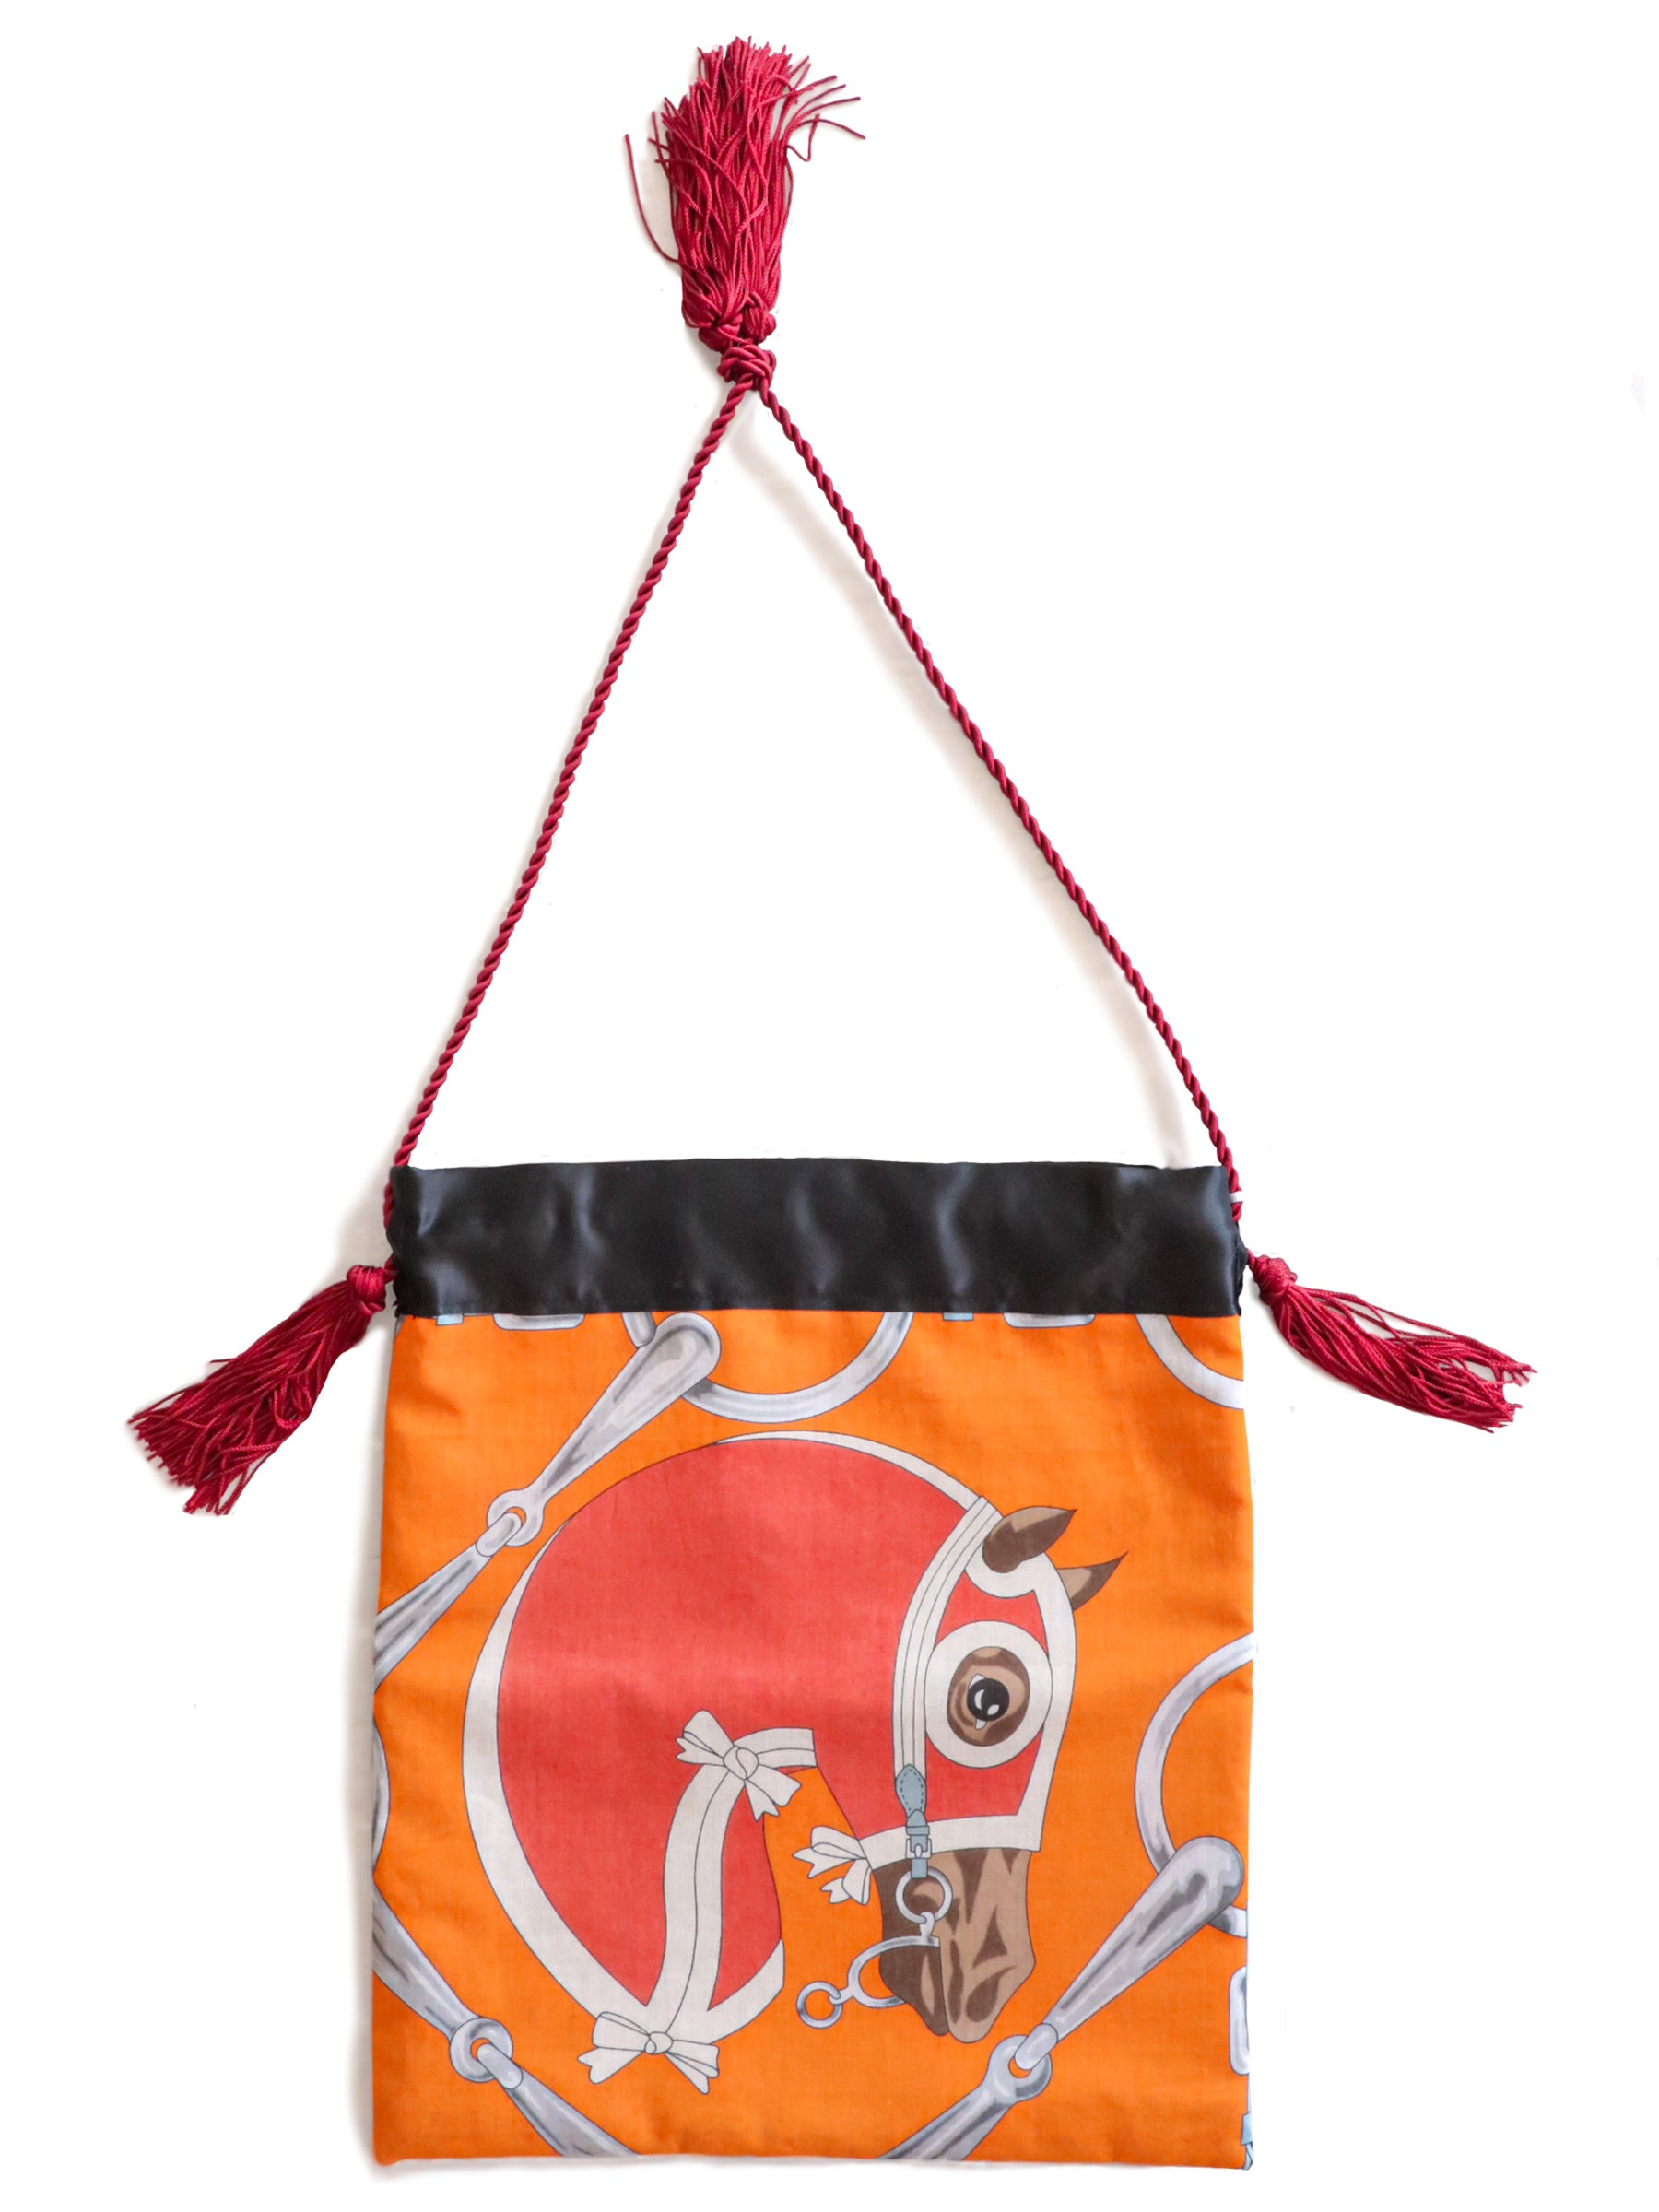 Hermes Horse Bag- Tatersale Pareo (Red)